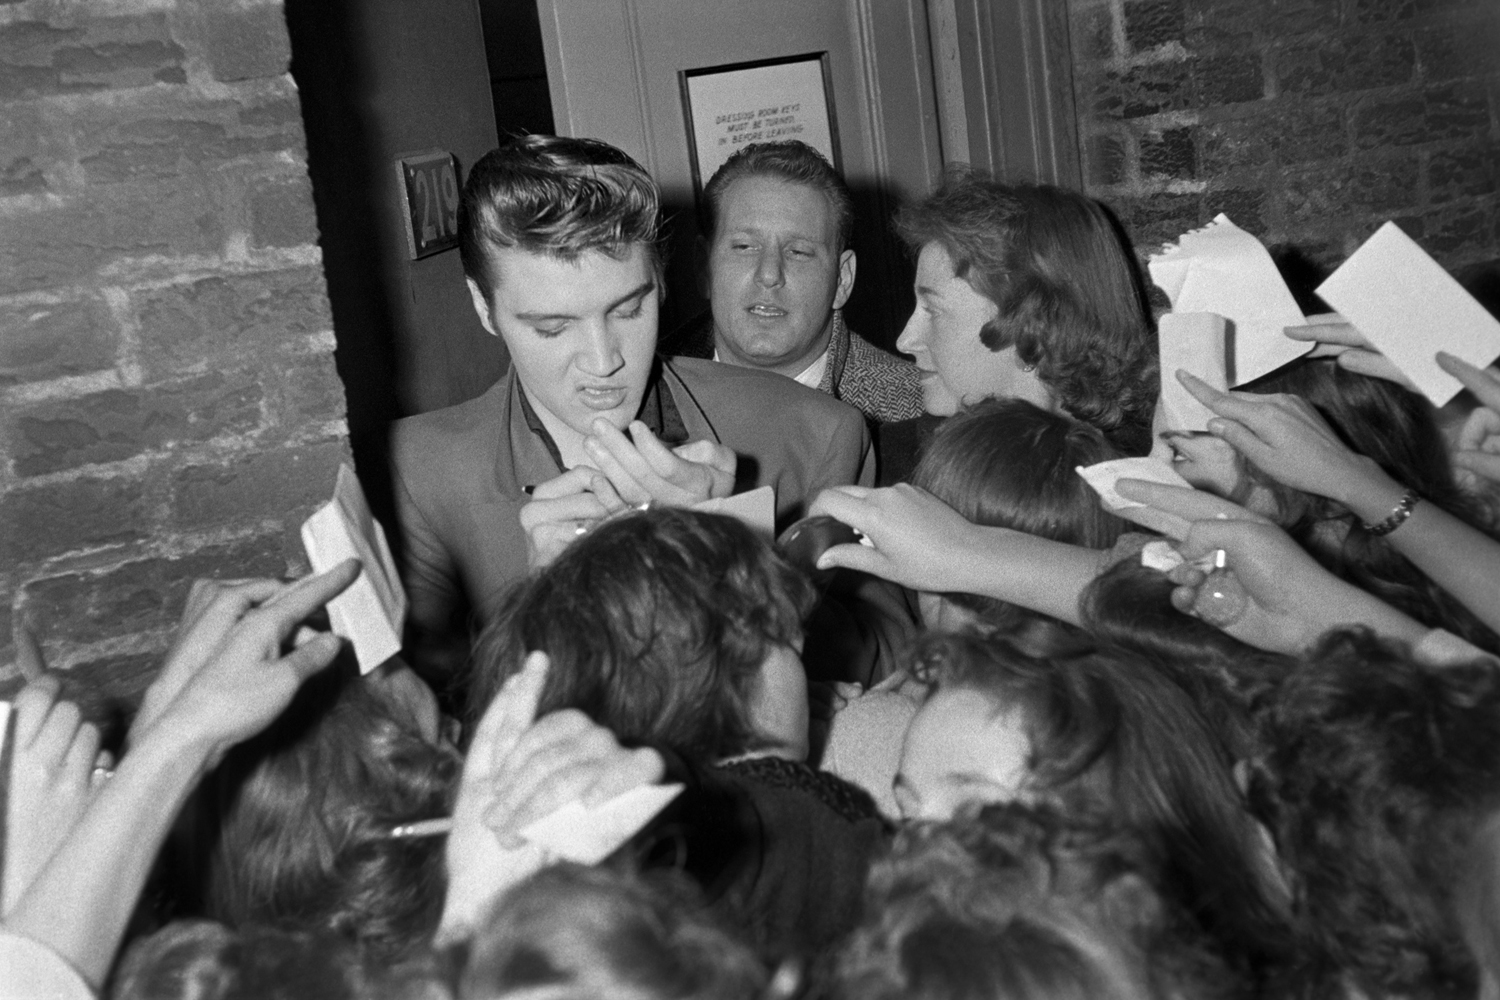 March 17, 1956. Studio 50 New York. This was the crowd after the Dorsey Brothers 'Stage Show.'  I just like the snarl. There were about a hundred well wishers at the backstage entrance and fans asking for autographs. The girl on the right was helping with slips of paper — she was so happy to be close to him. And this guy was concerned with keeping Elvis warm.